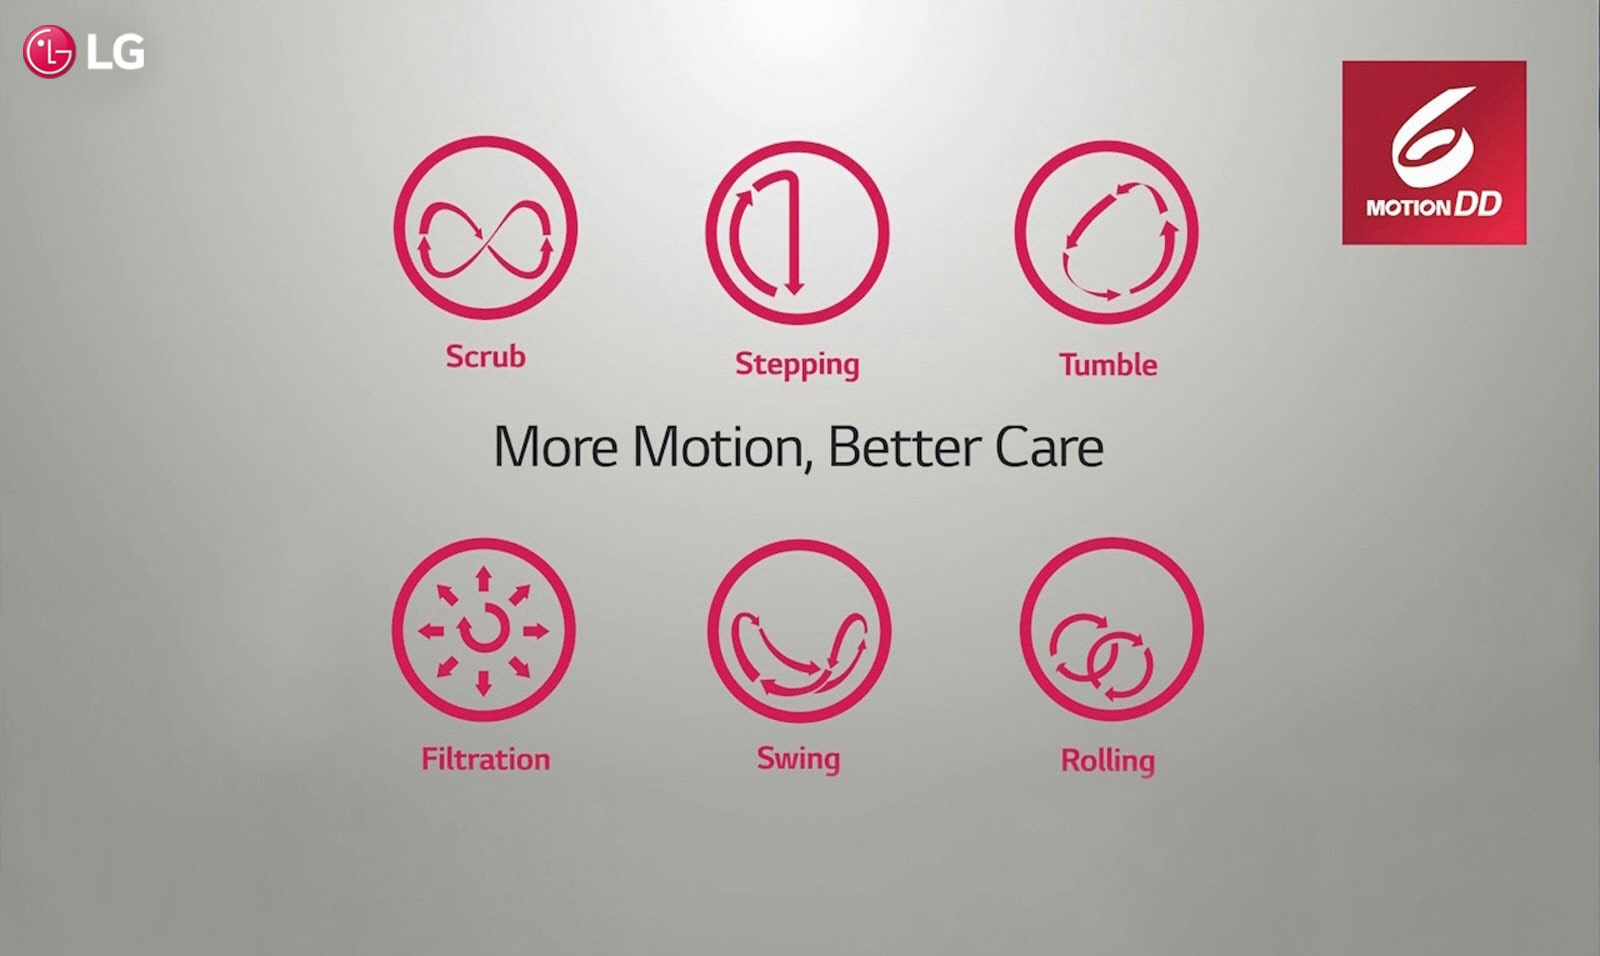 LG FHT1208ZNW More Motion Better Care